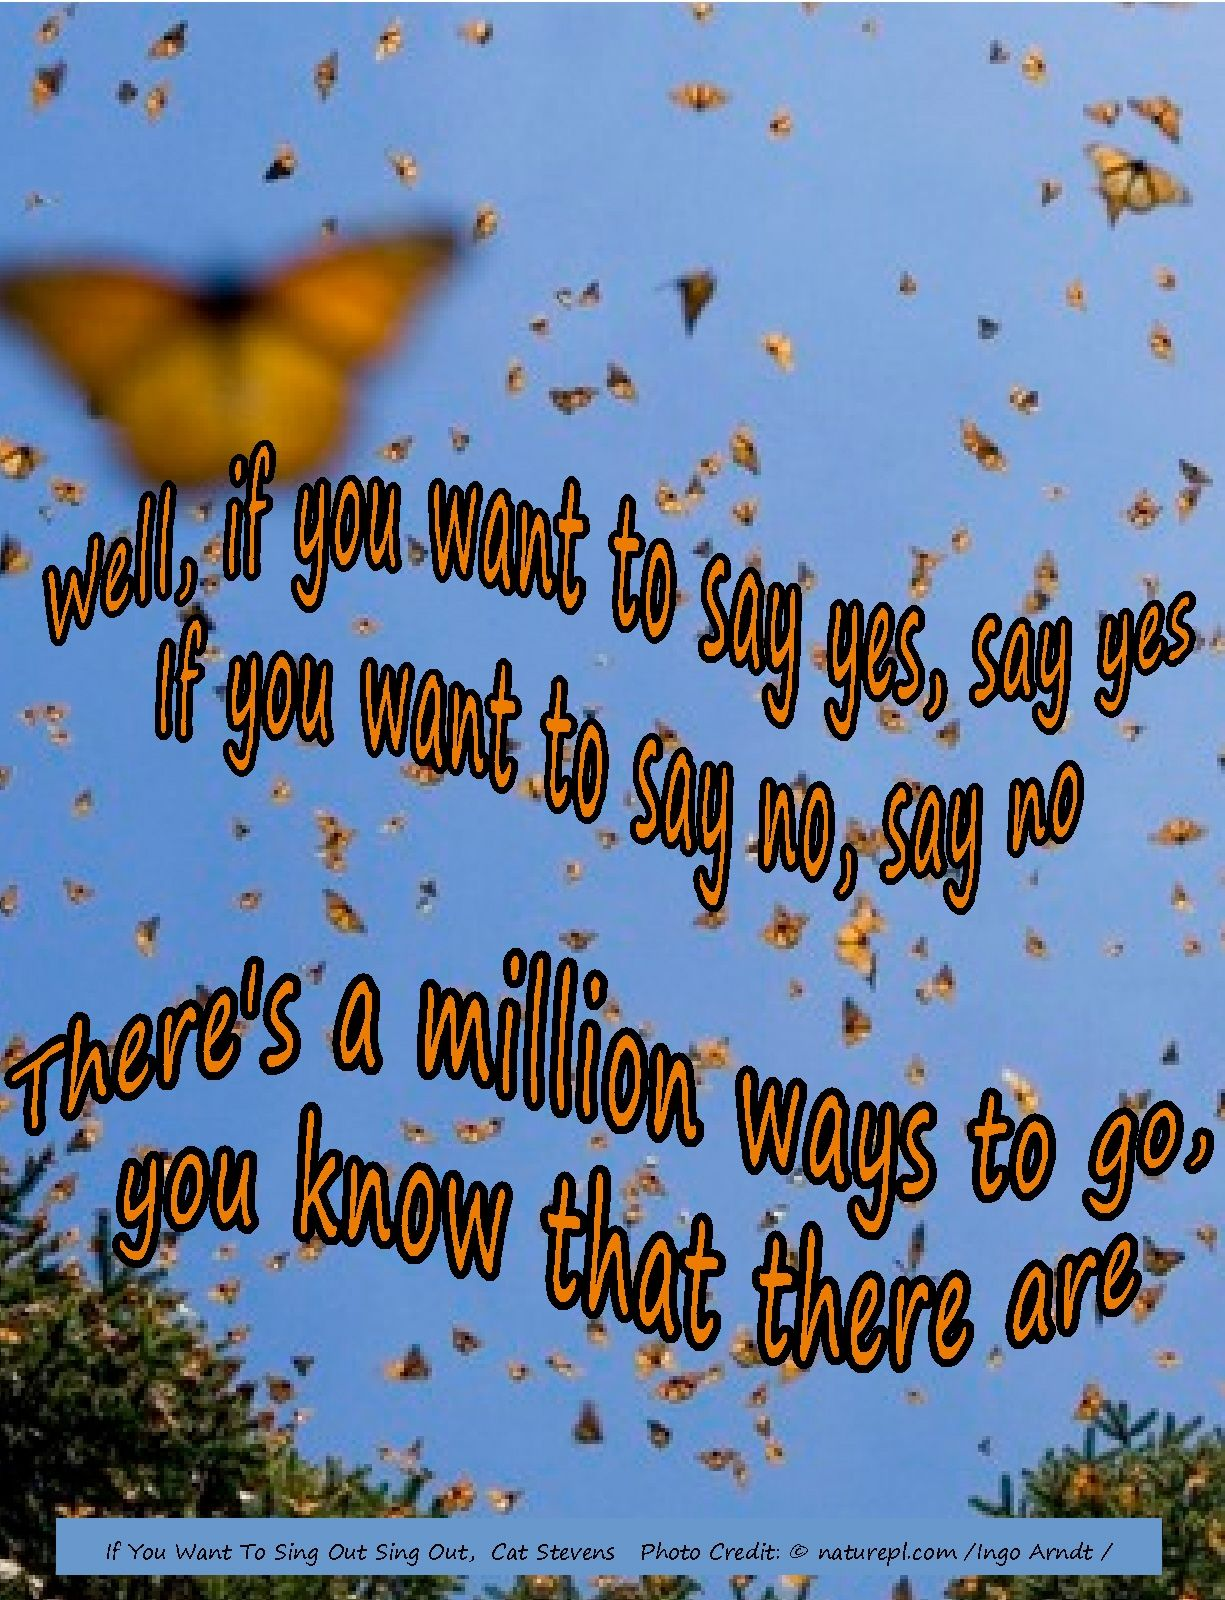 """If you want to say yes, say yes....there's a million ways to go, you know that there are""....Cat Stevens"